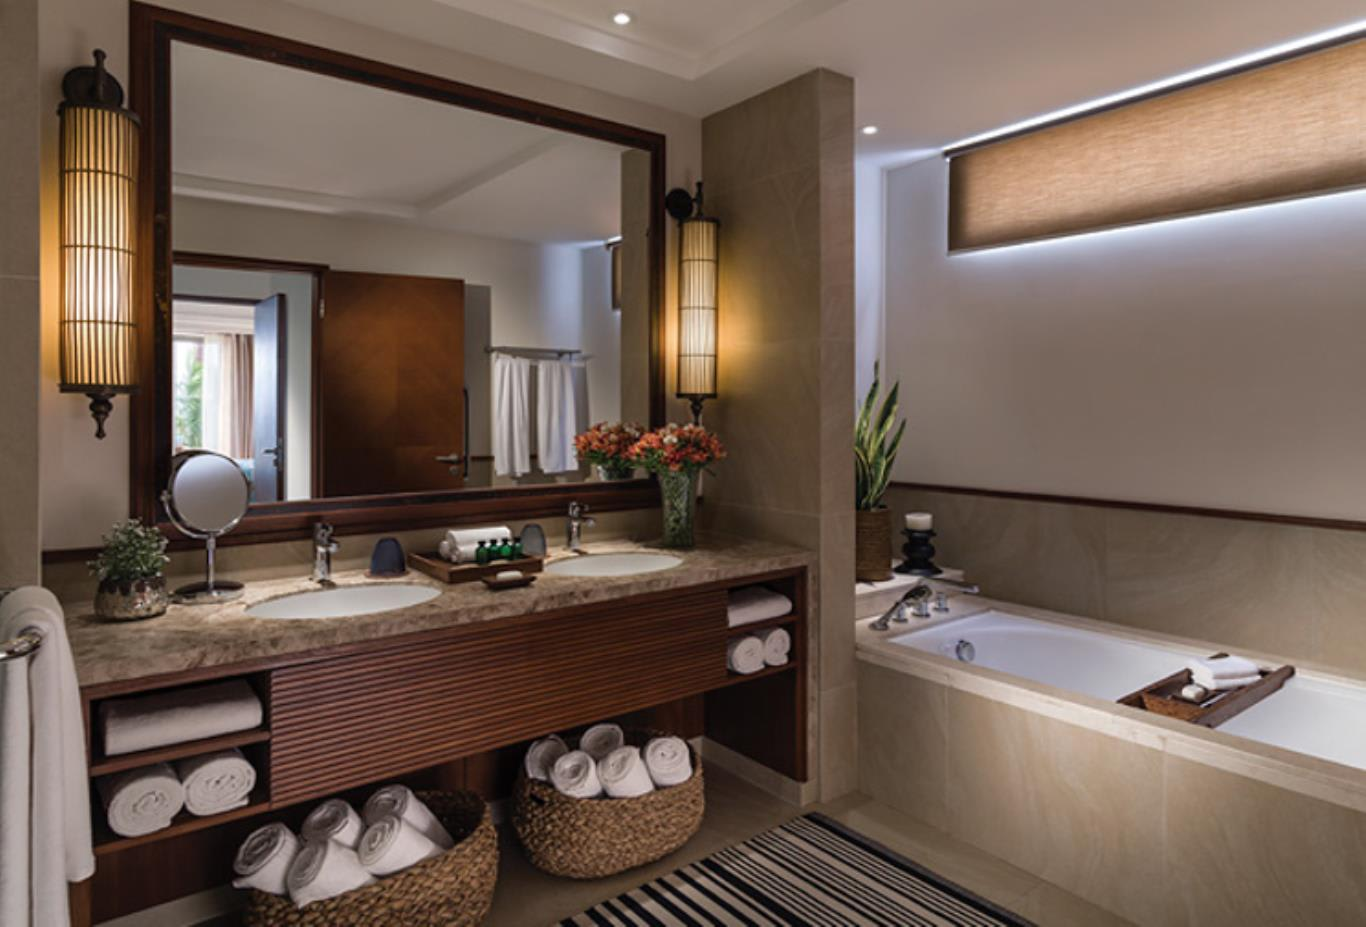 Premier Ocean Suite bathroom